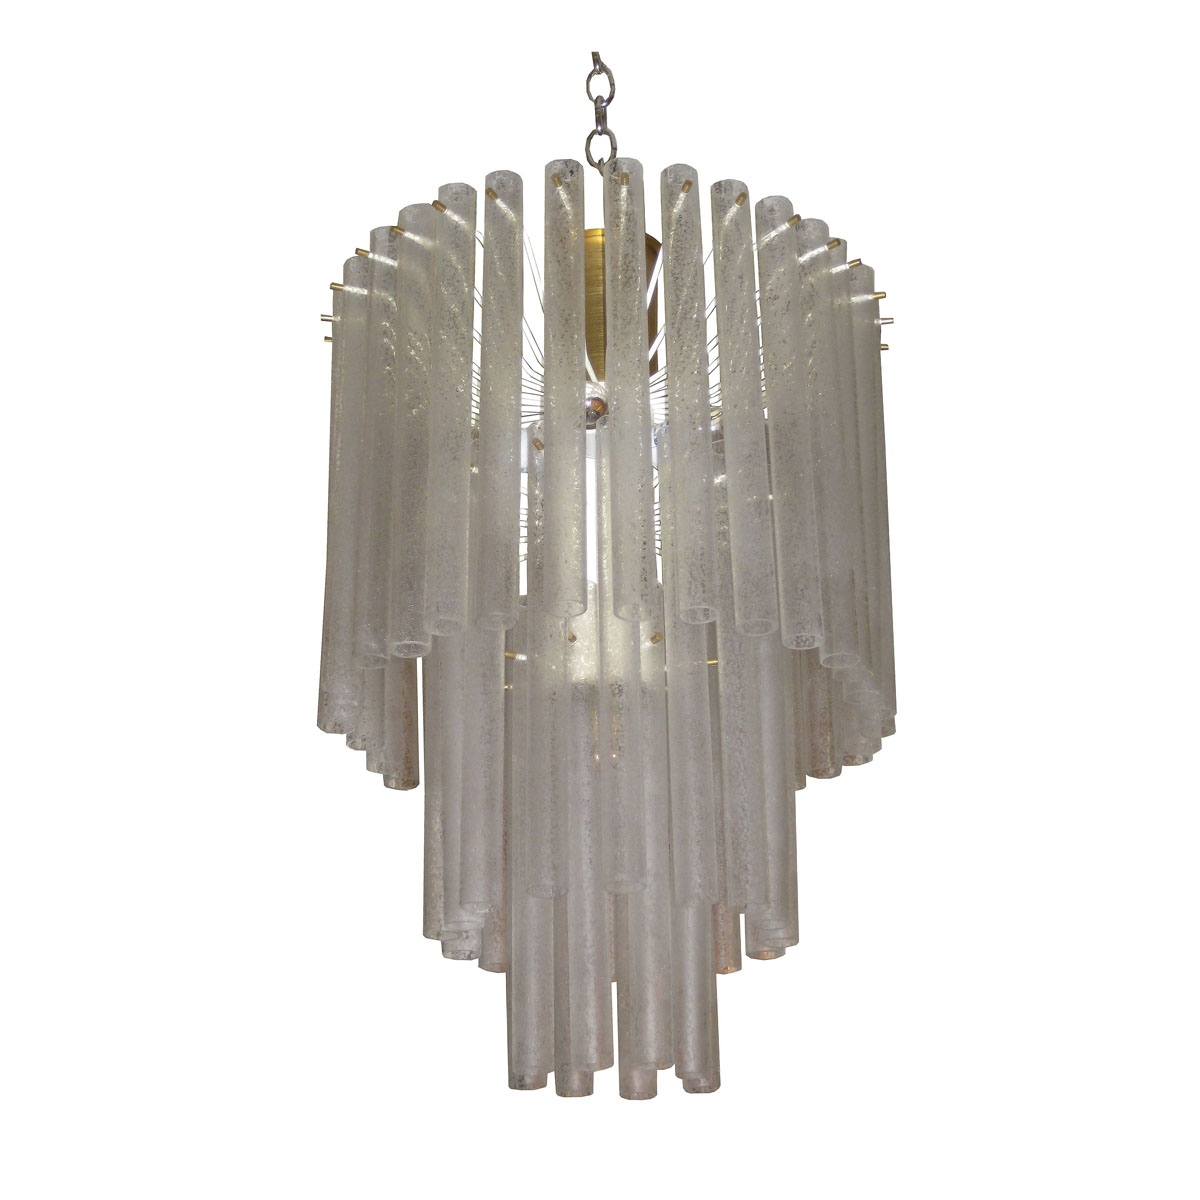 Three tier frosted glass tube chandelier by venini chandeliers three tier frosted glass tube chandelier by venini chandeliers pendants john salibello aloadofball Images